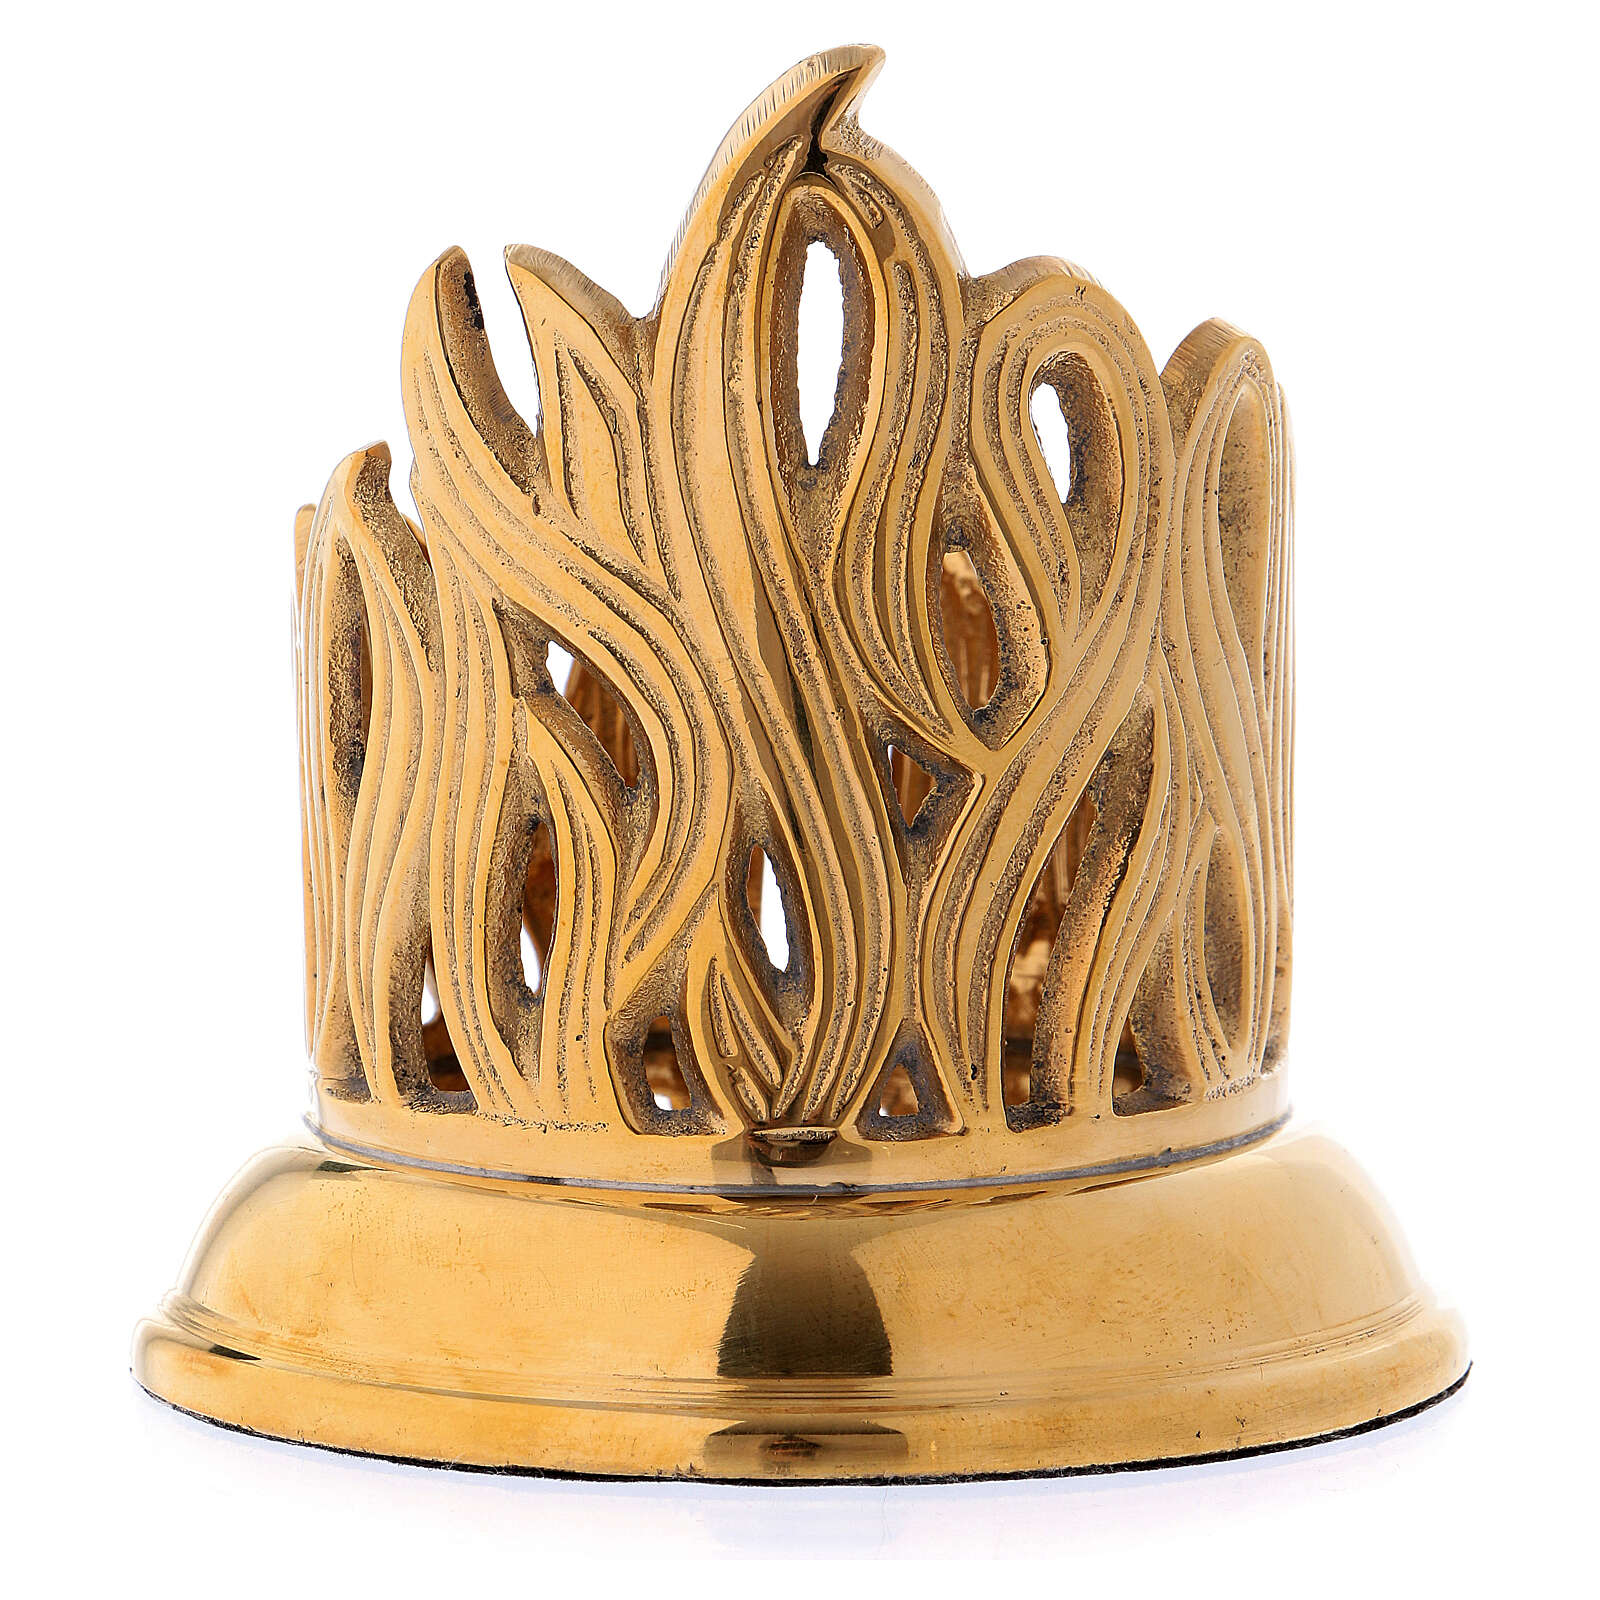 Flame carved candlestick in gold plated brass 4